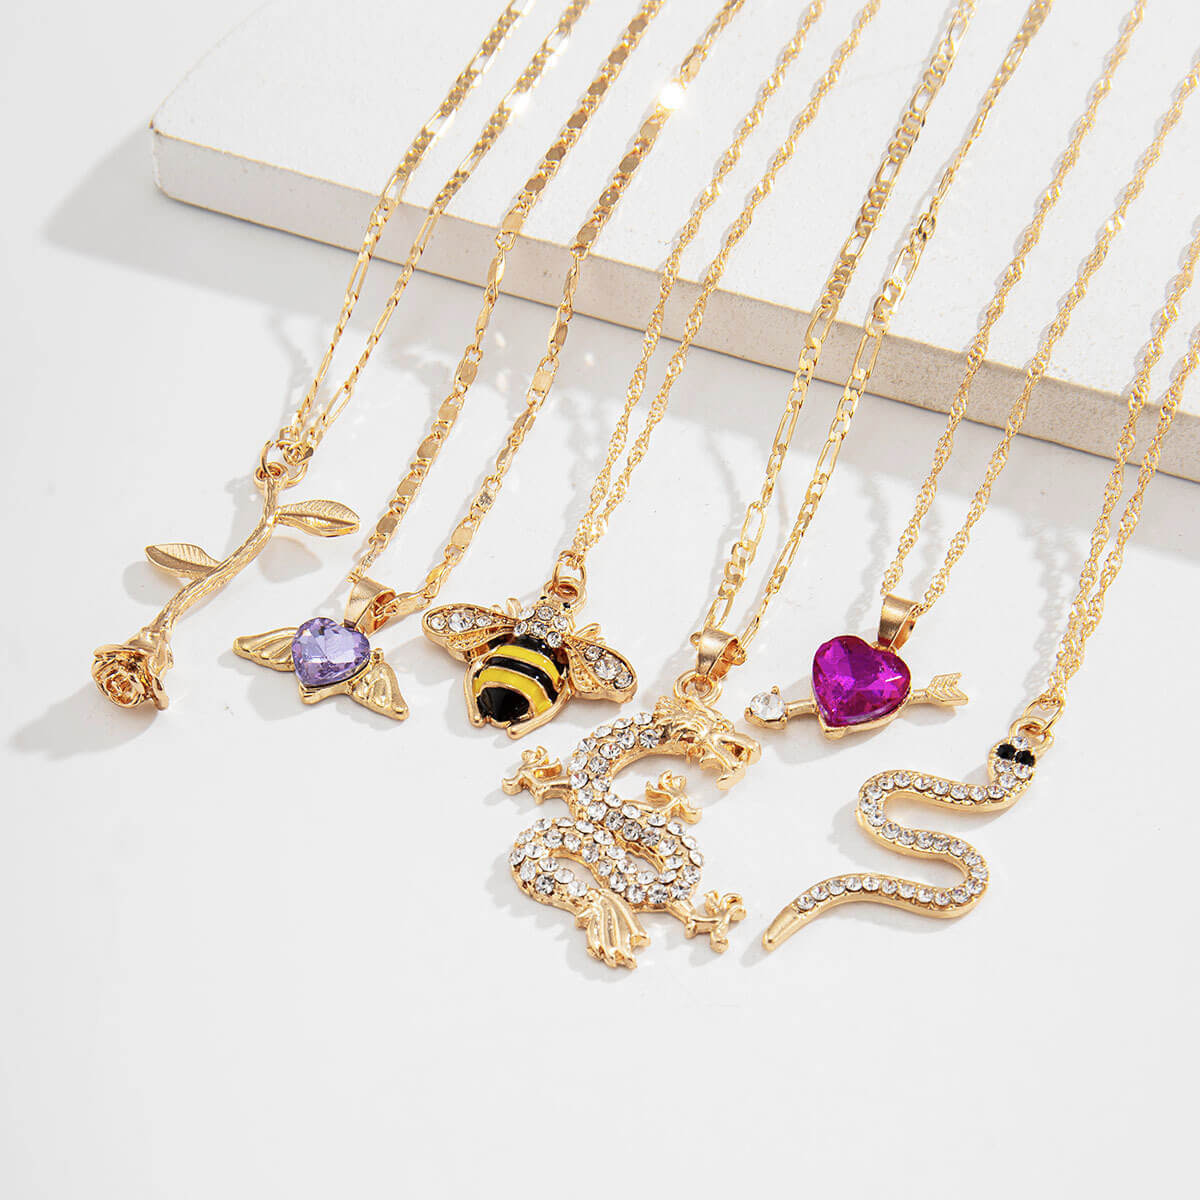 LW Lovely Retro 6-piece Gold Necklace